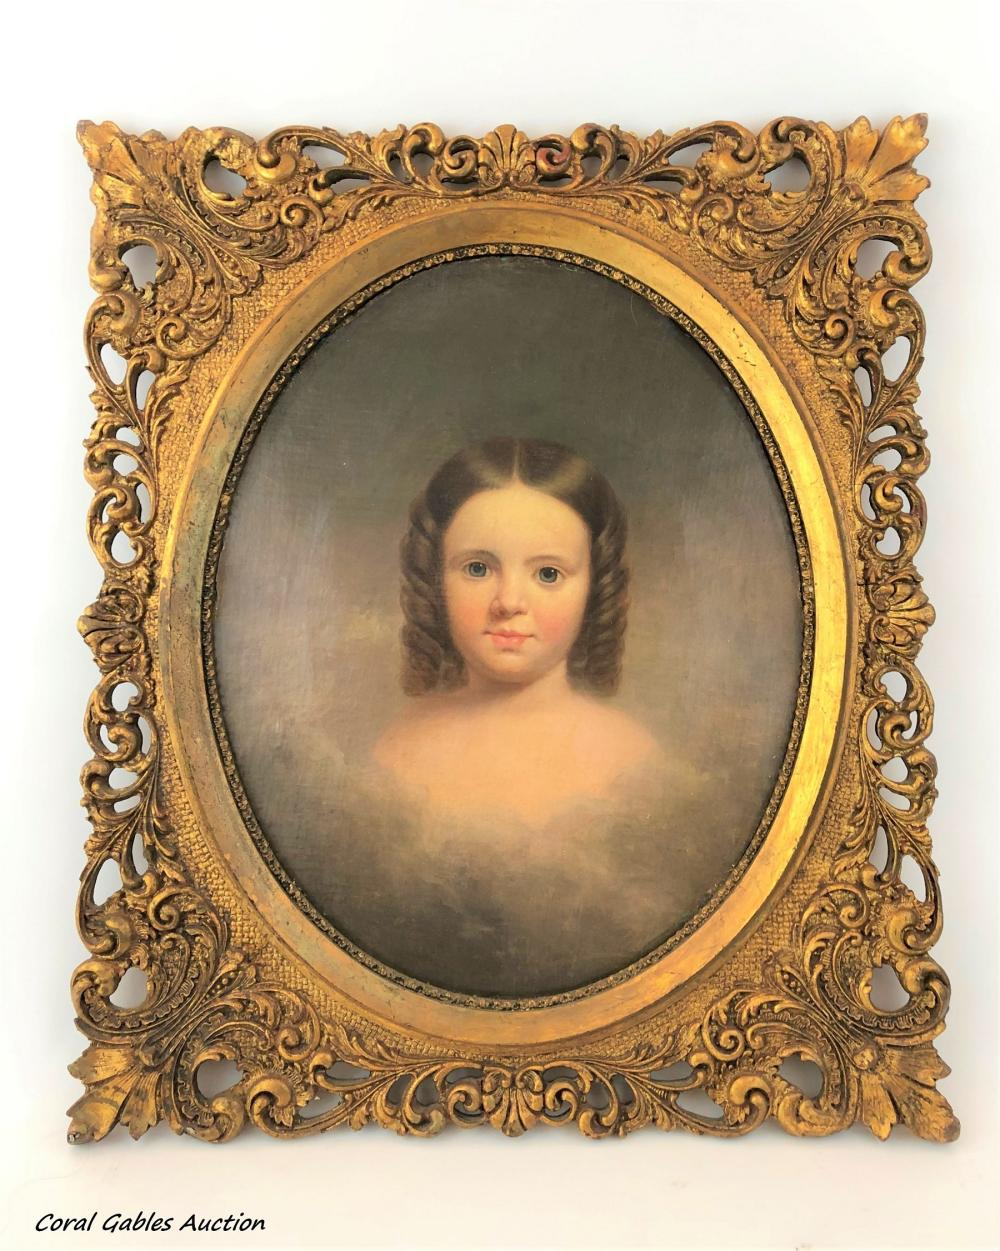 Portrait of the 19th century. Oleo on canvas. No signed